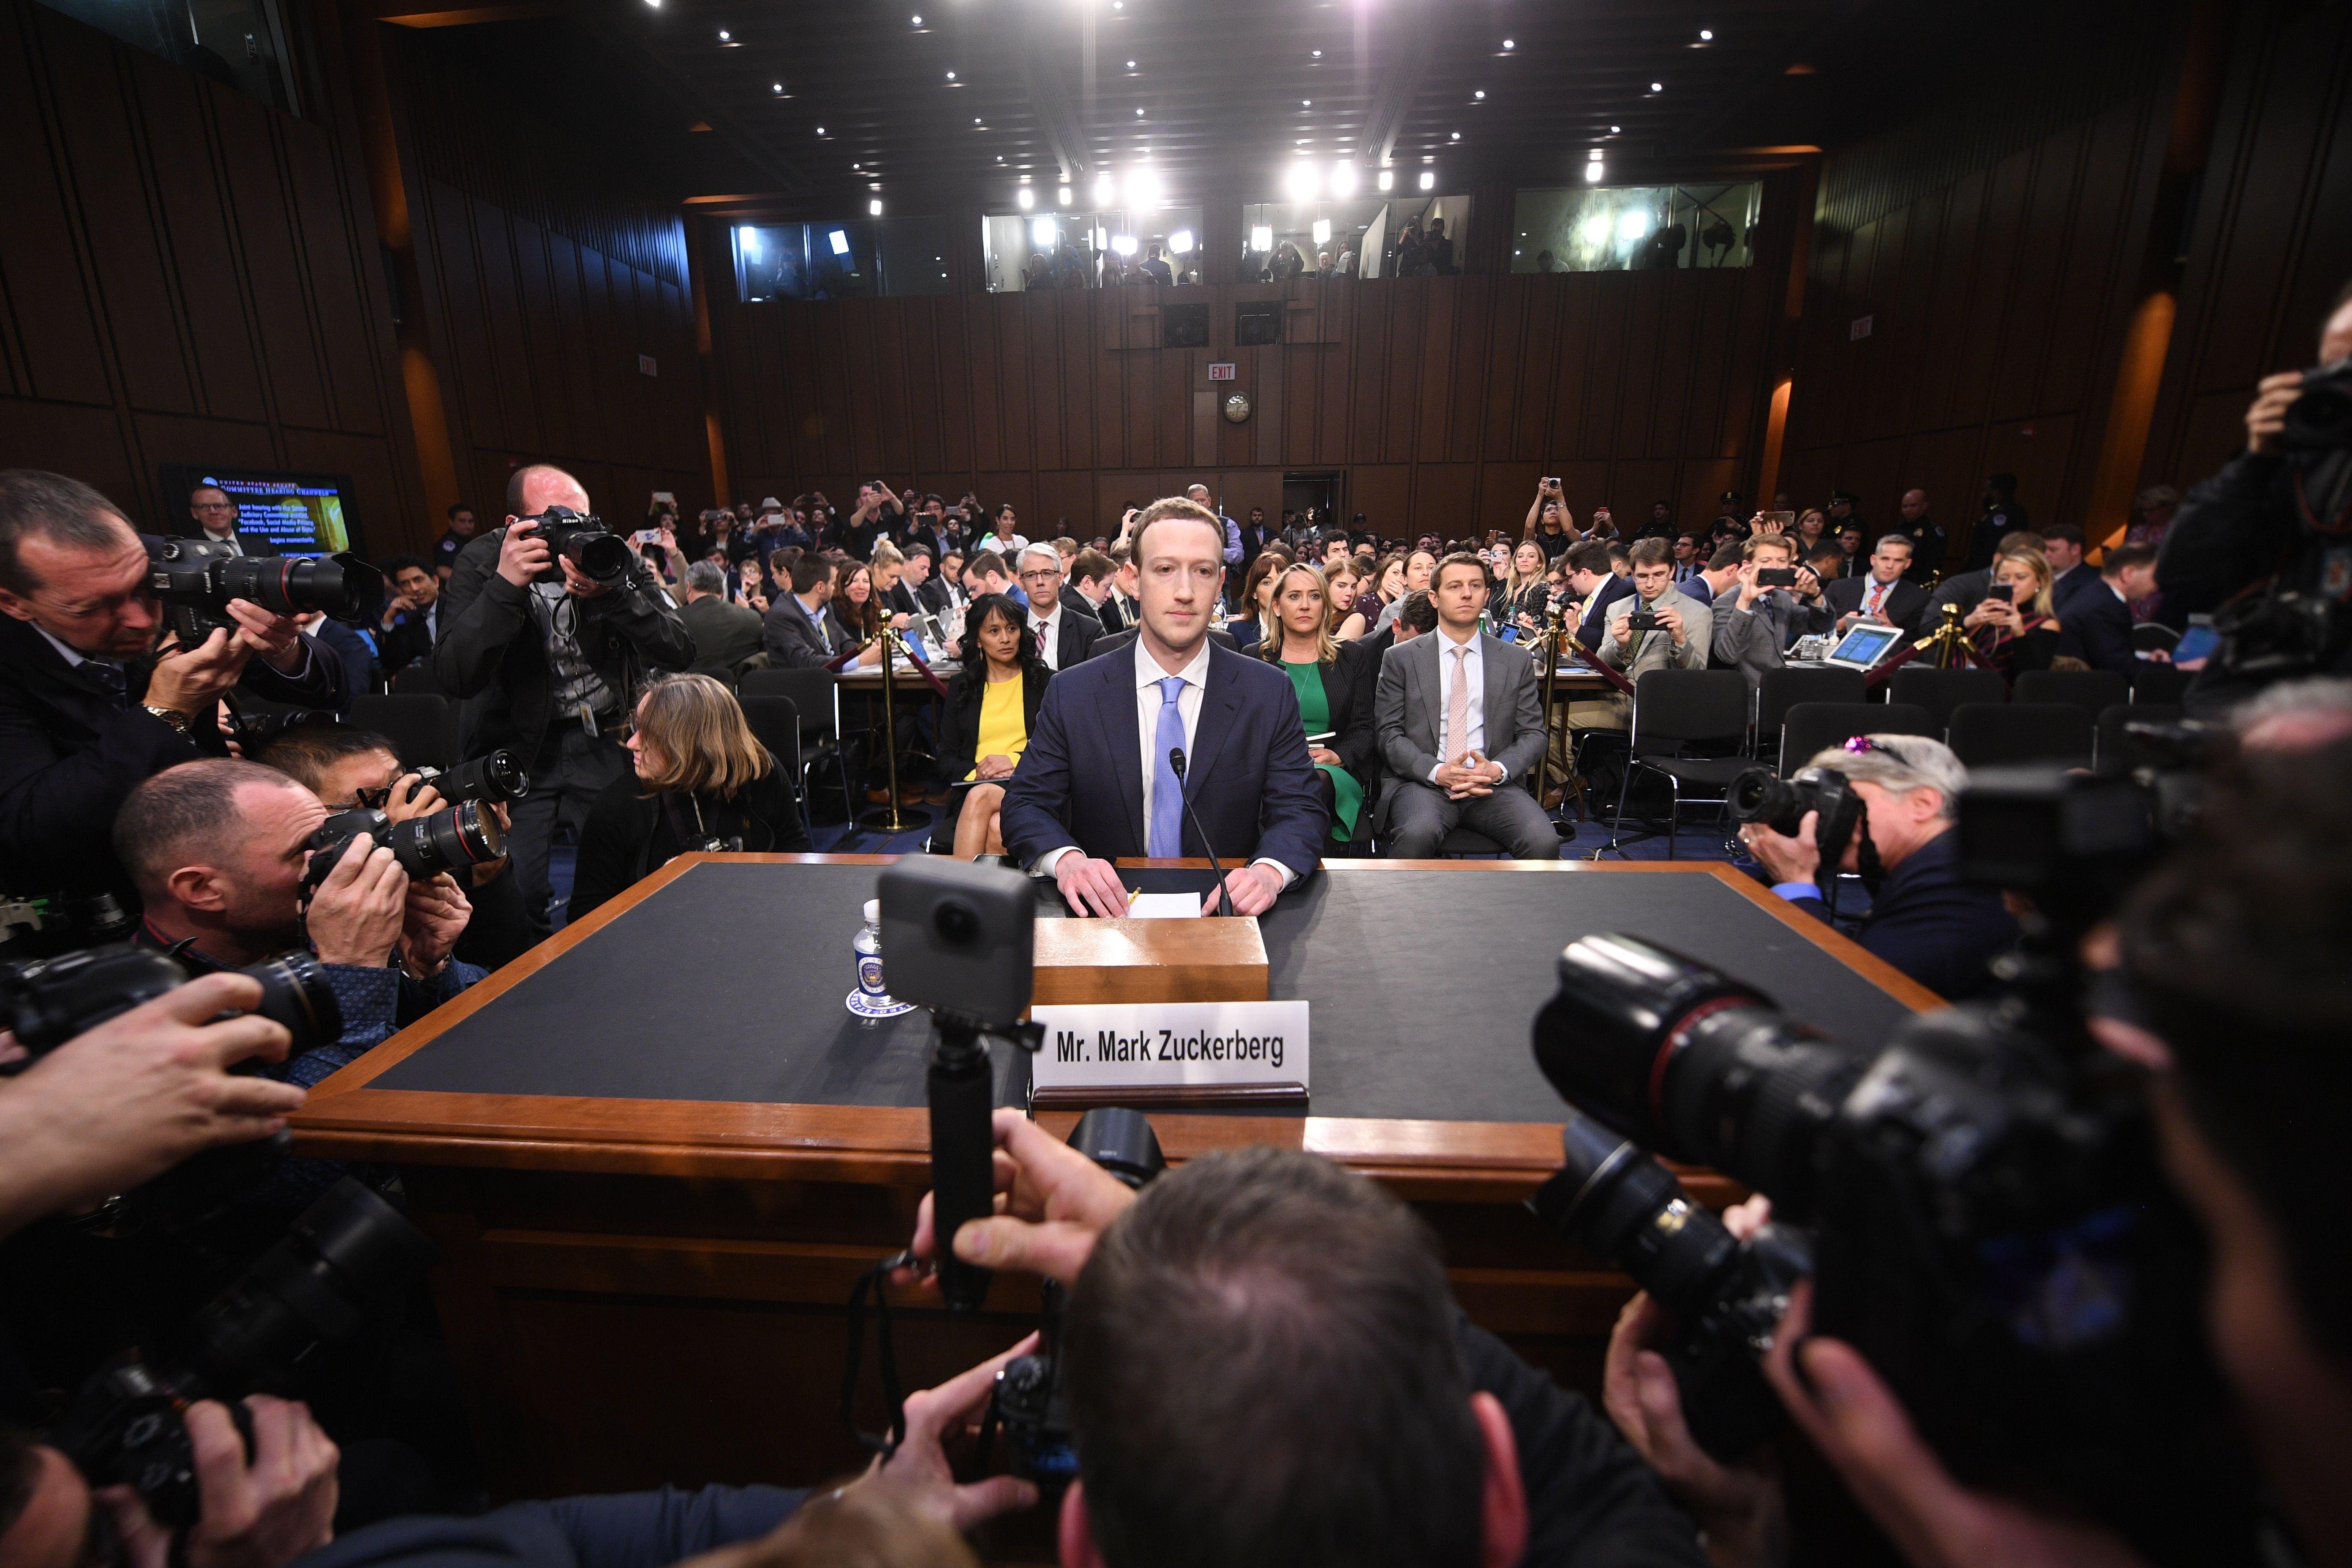 Mark Zuckerberg may have signaled a paid version of Facebook is coming